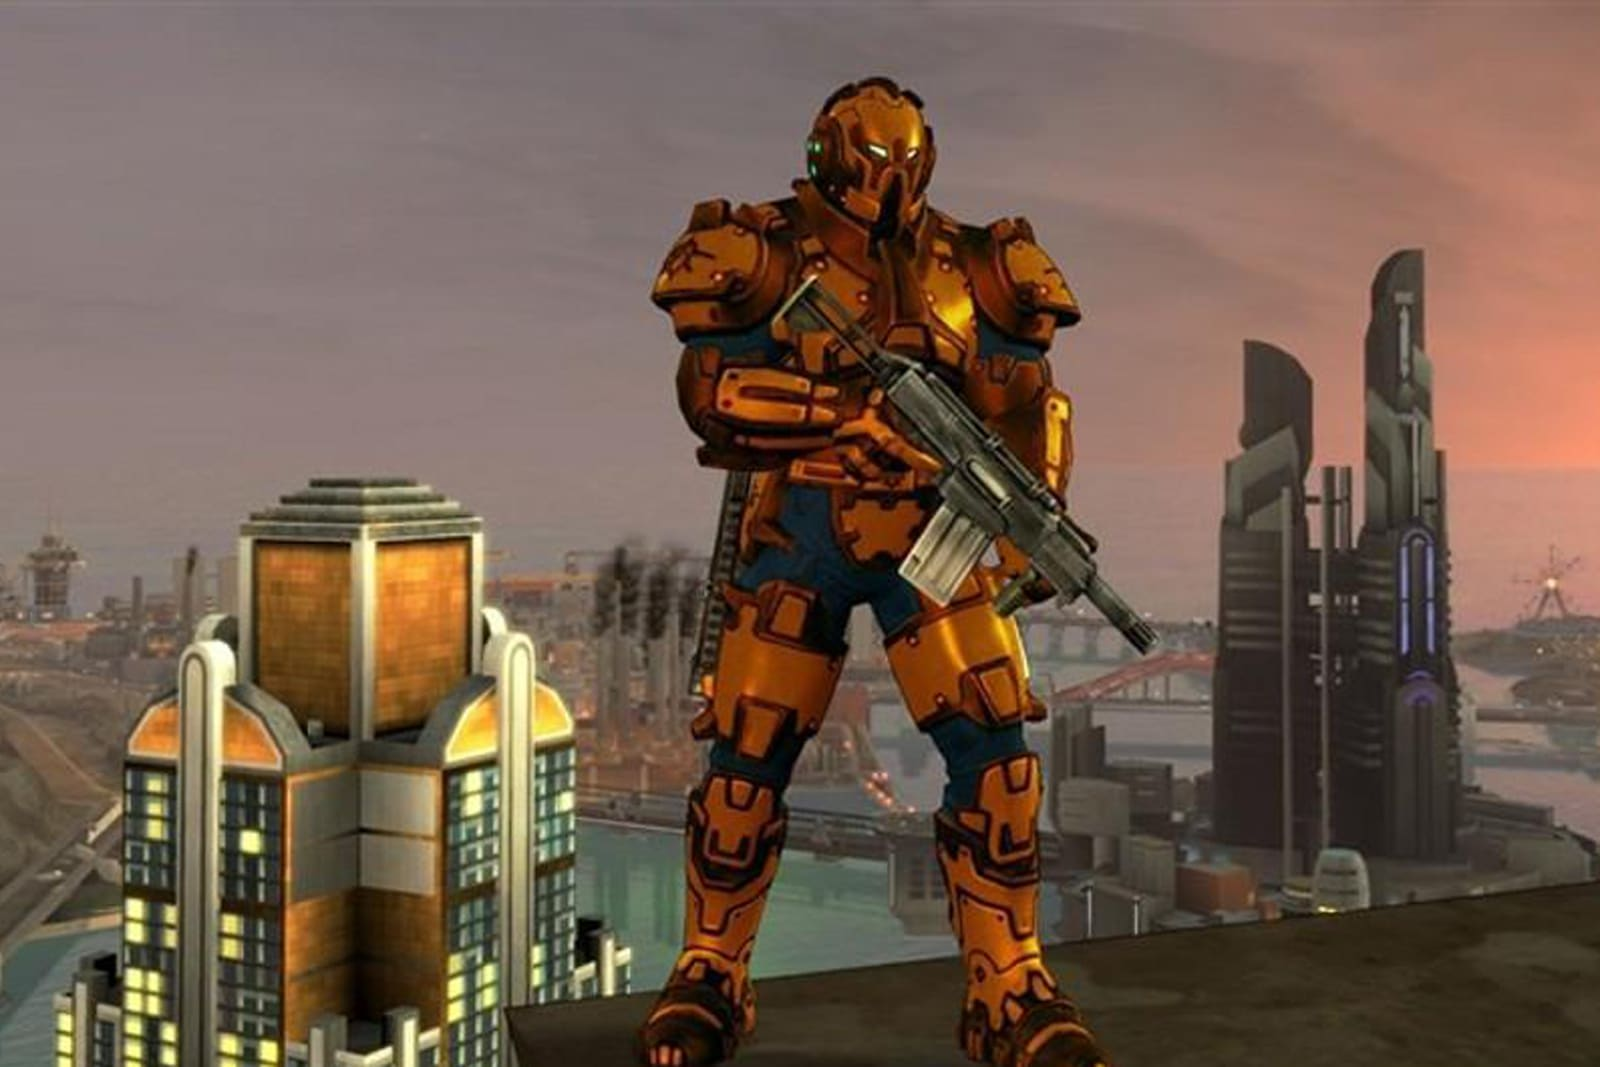 Crackdown 2' is free on Xbox One ahead of updates to its sequel